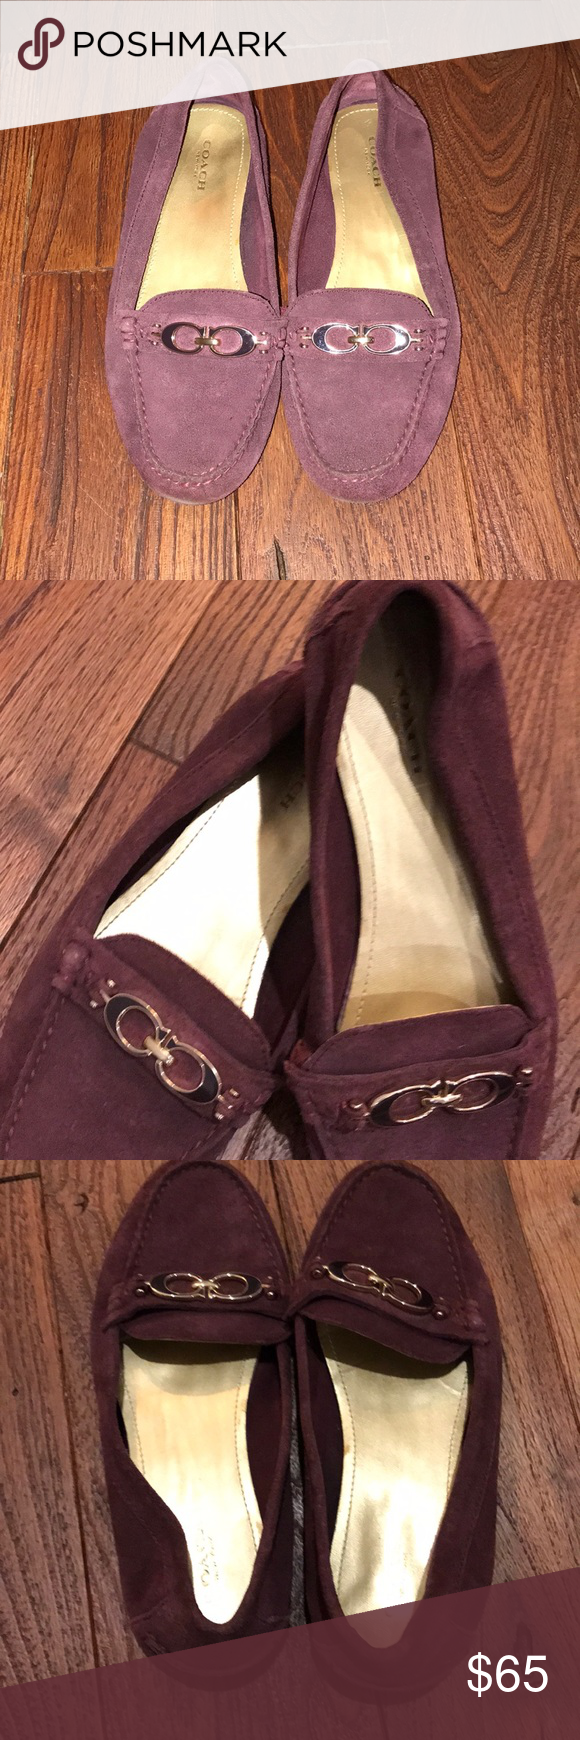 58199bc9699 Coach Fortunata Burgundy Suede Loafers Coach Fortunata Burgundy Suede  Loafers. Size 7.5 with coach emblem buckle. Very comfortable in good  condition.